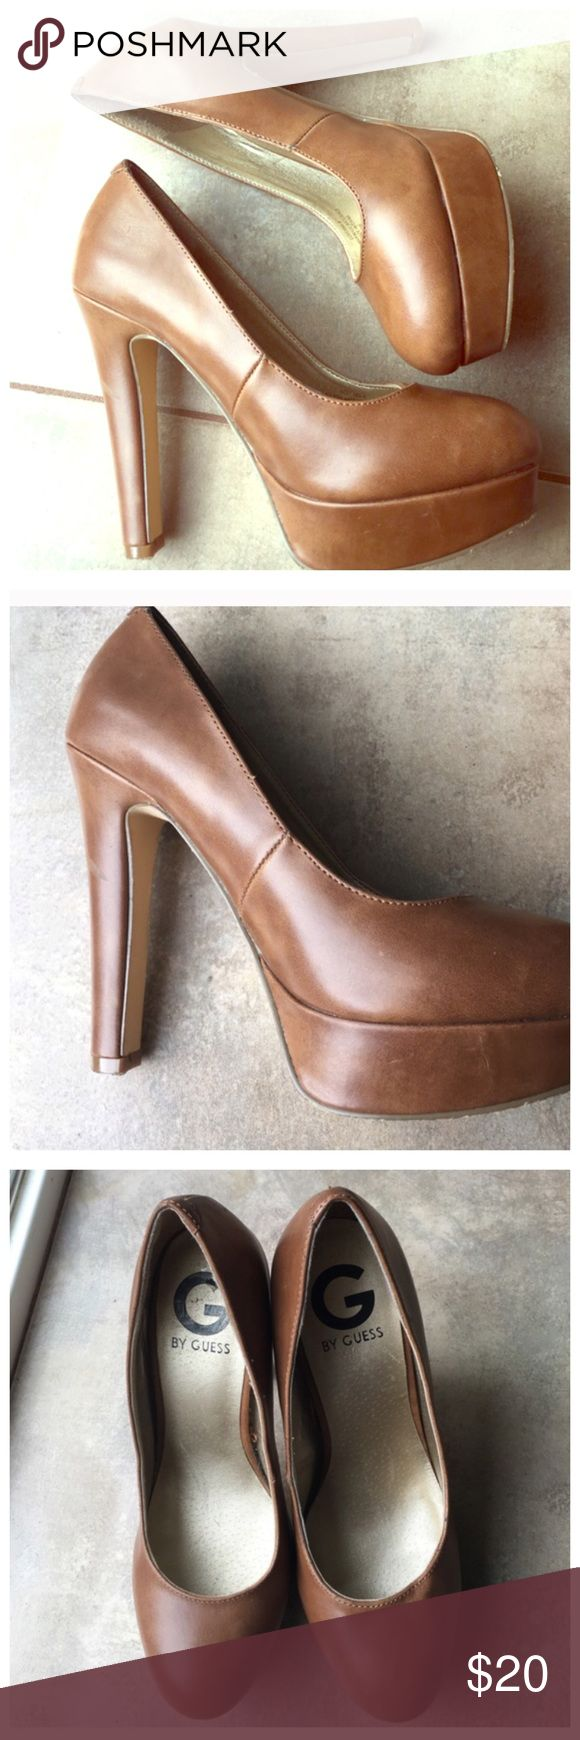 Camel pumps Beautiful tan color. Thicker heel is easier to walk in. Comfortable and stylish! G by Guess Shoes Platforms